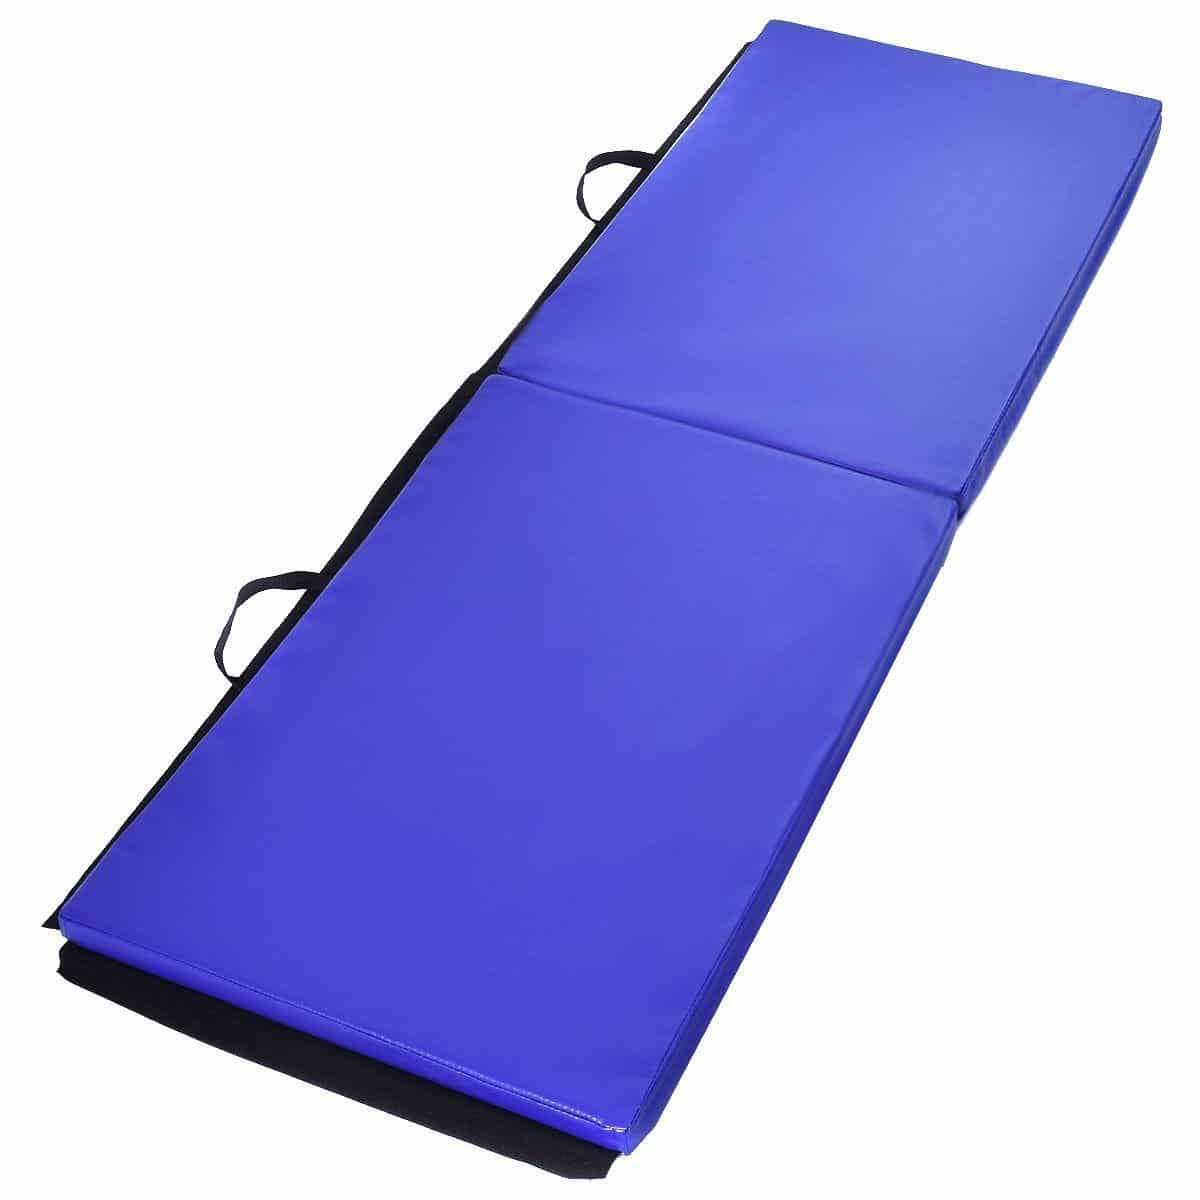 pad exercise gymnastics best mats pading flooring rated big pcr pu leather wolfwise fold customer mat reviews folding tumbling in tri balance helpful gym